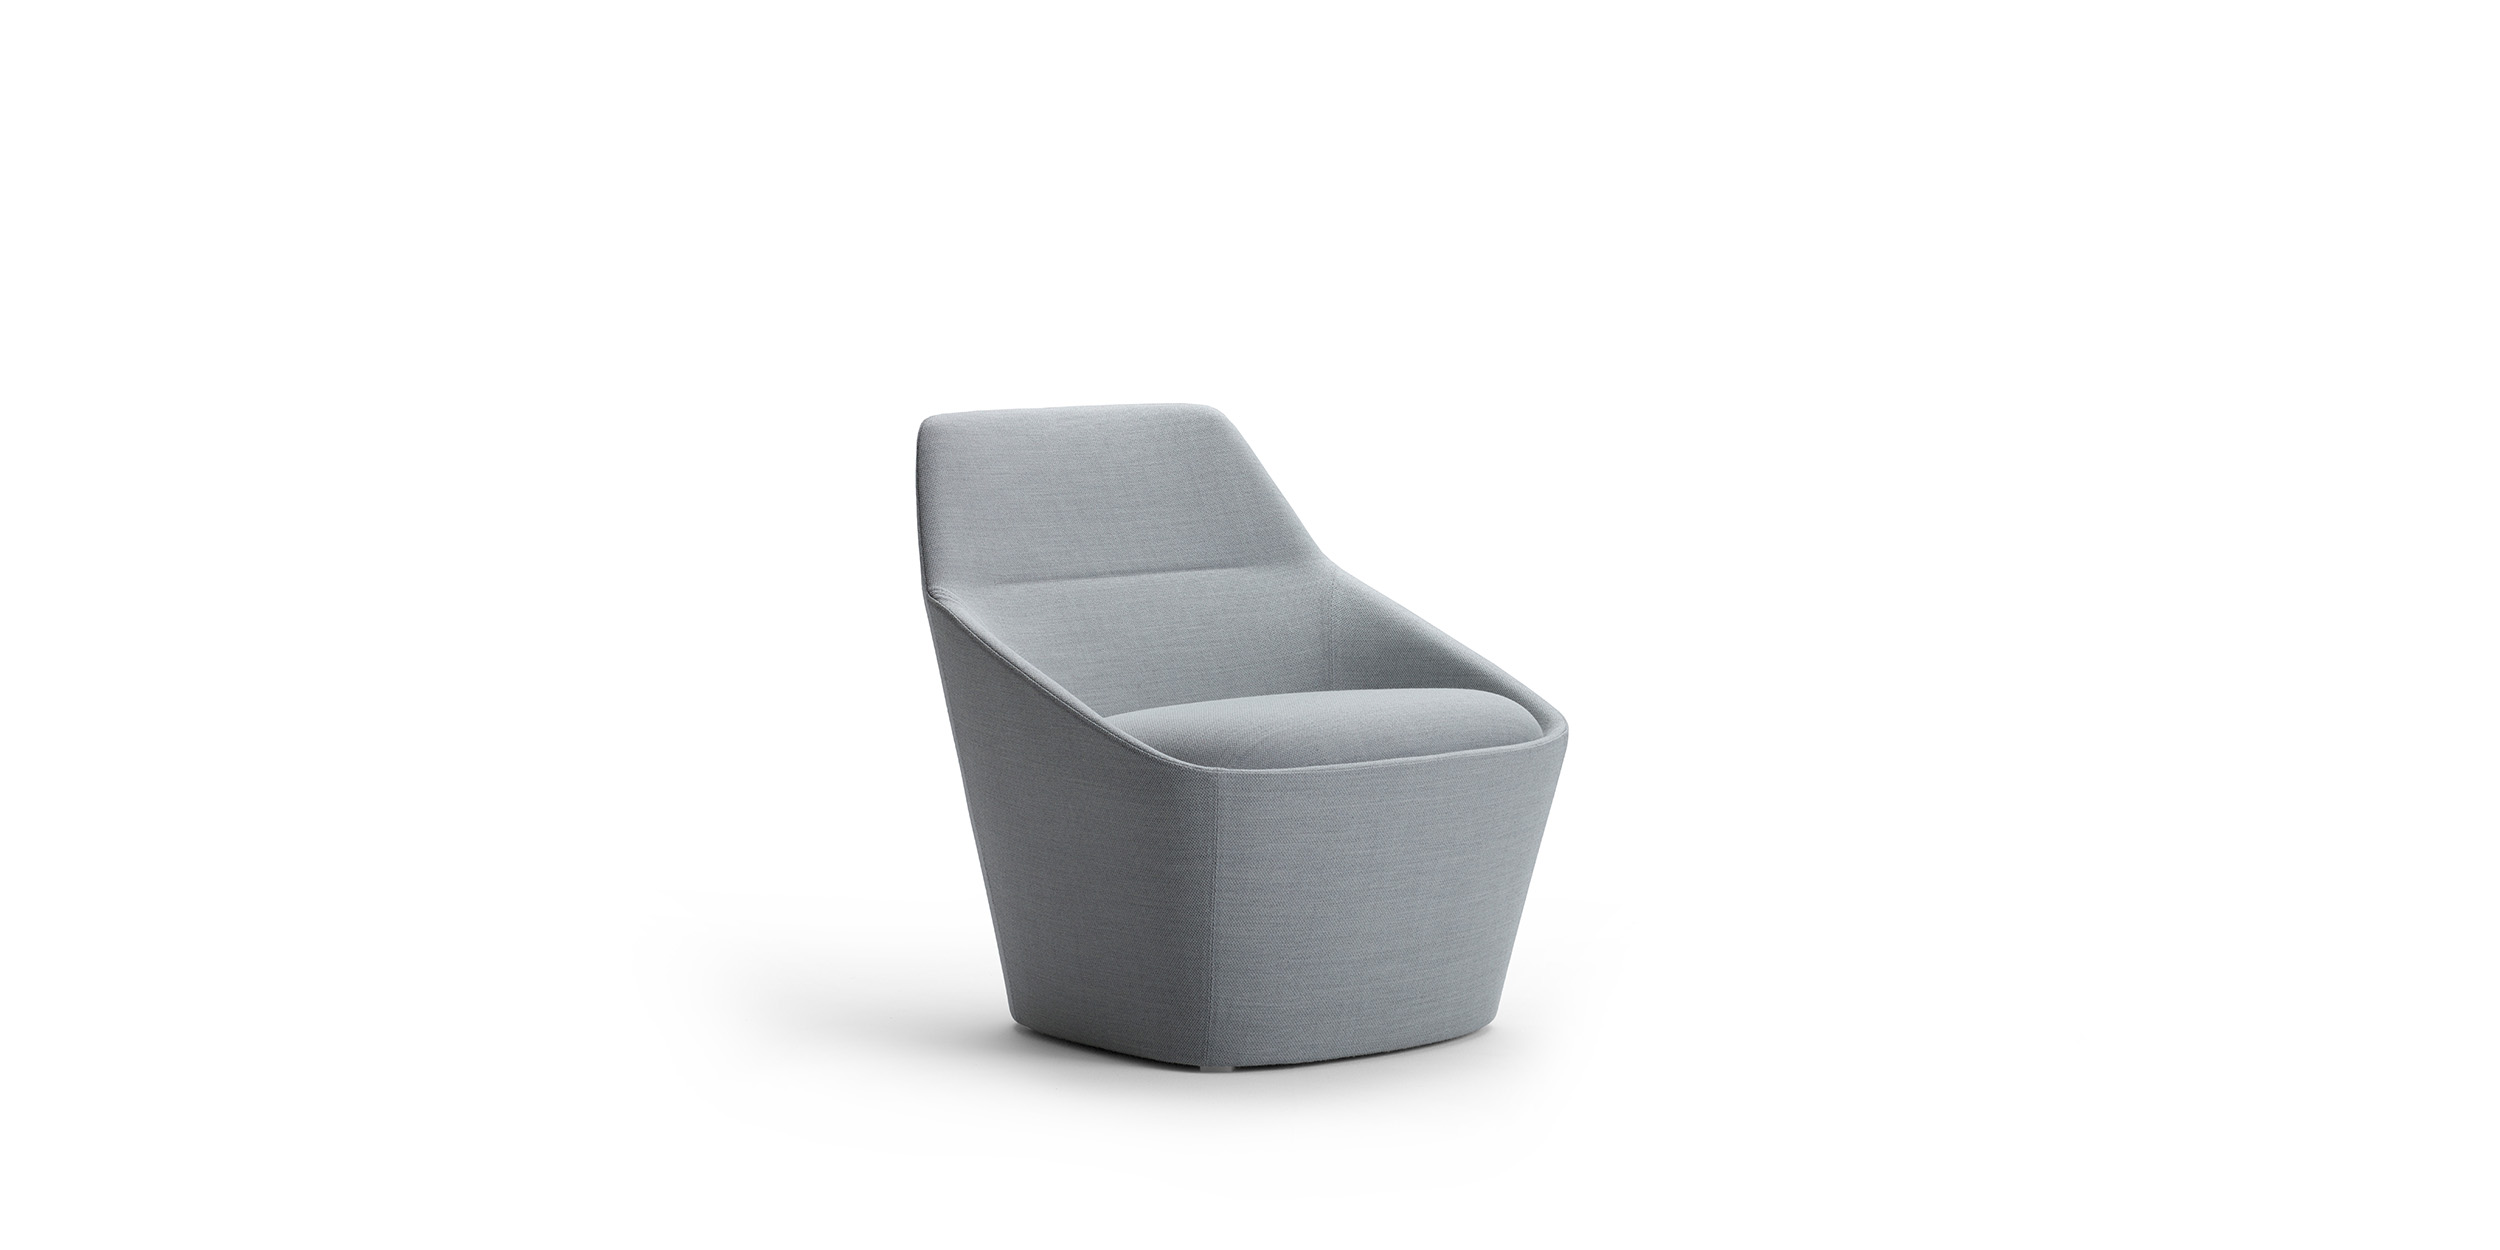 Ezy Large, Easy chair by Christophe Pillet